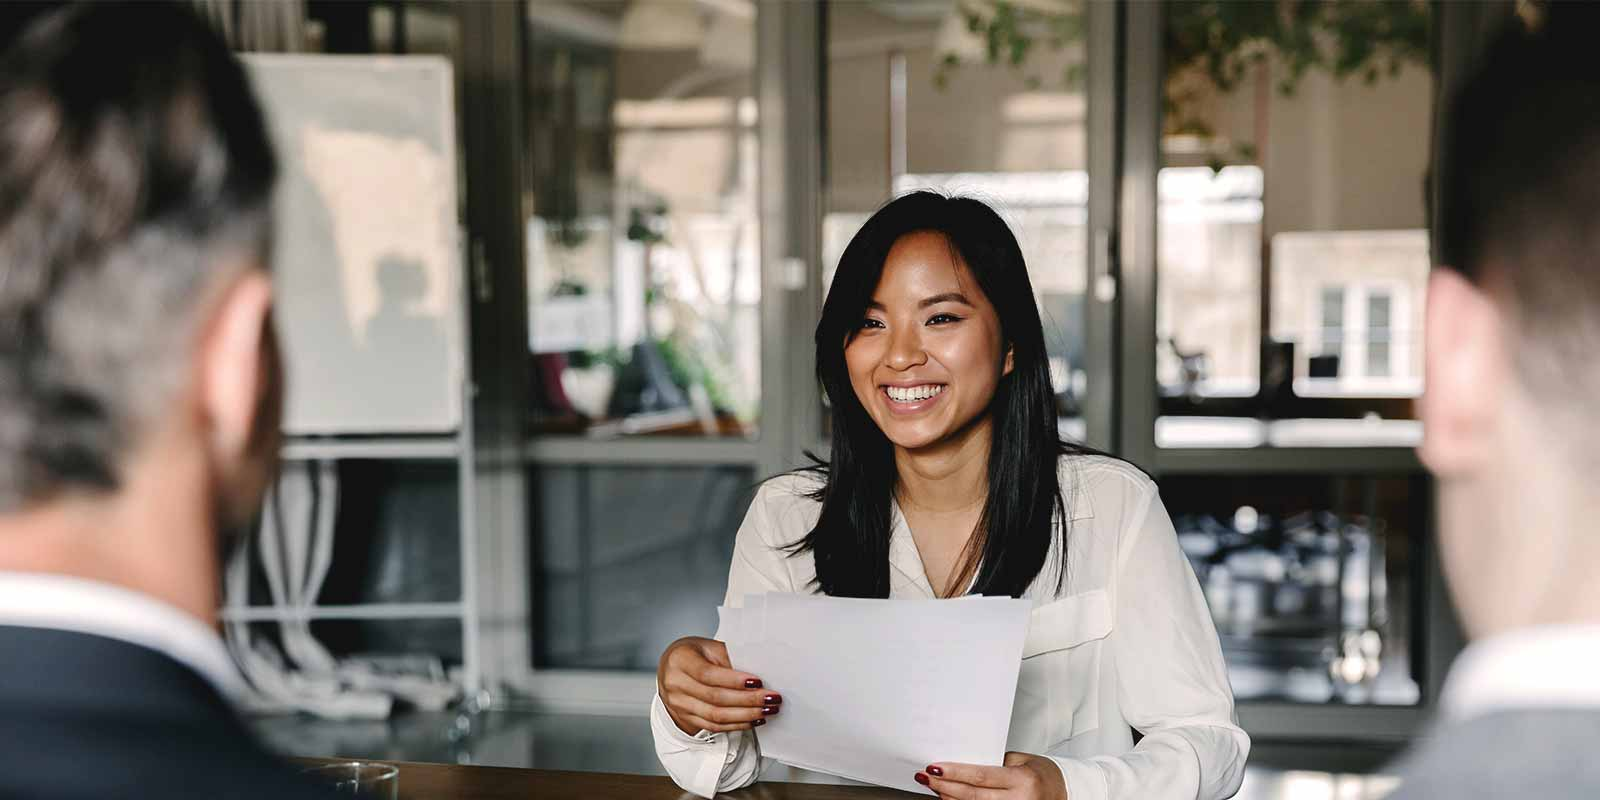 a-woman-smiling-and-confident-in-a-visa-interview